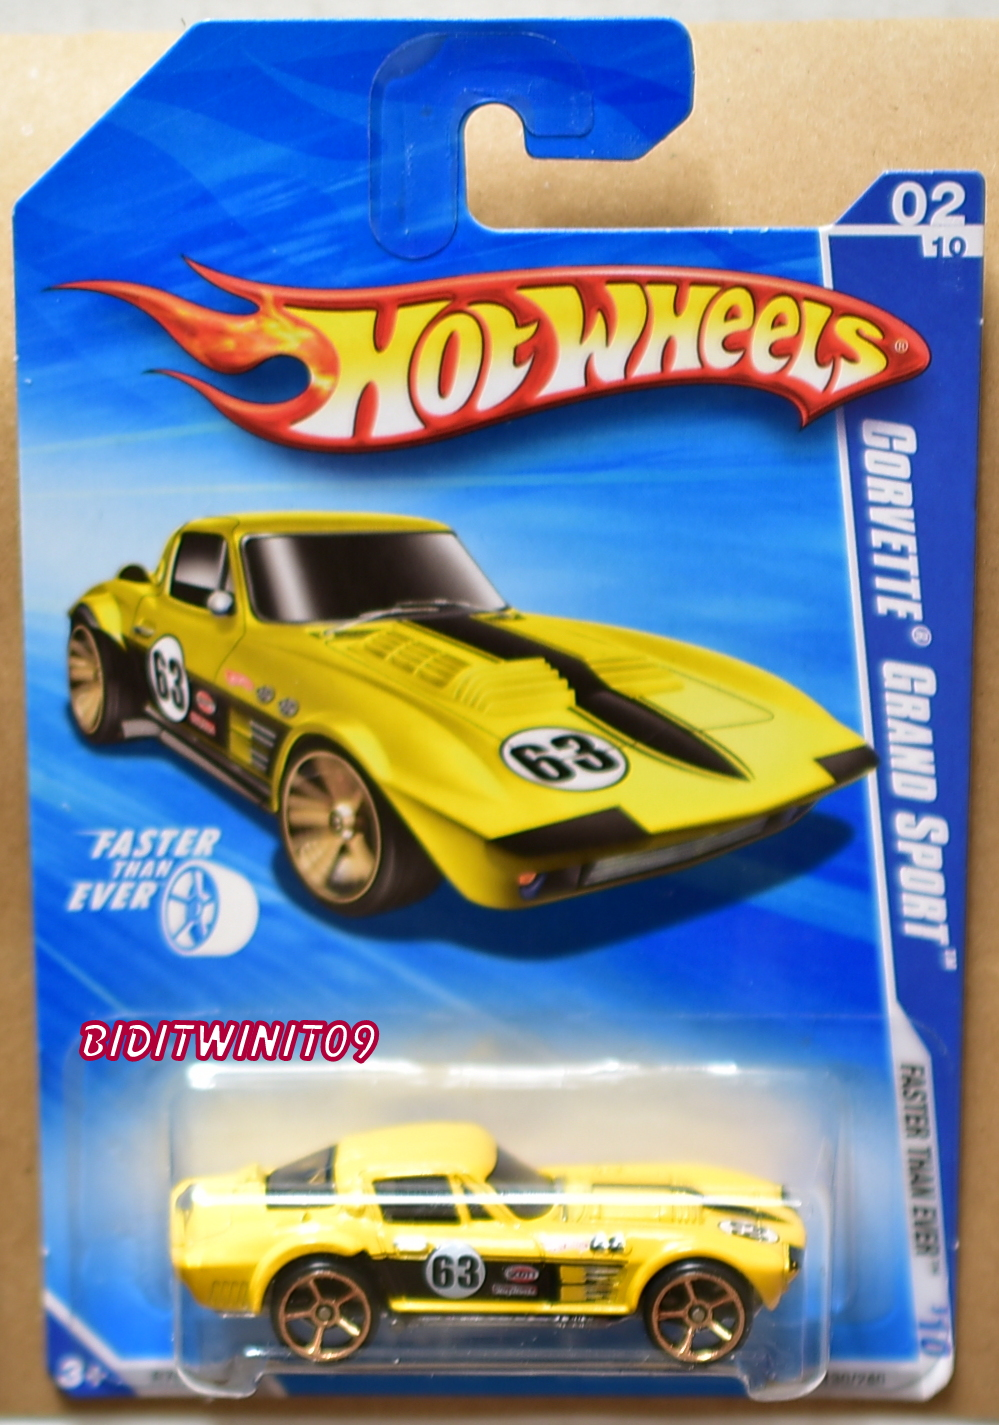 HOT WHEELS 2010 FASTER THAN EVER CORVETTE GRAND SPORT #02/10 YELLOW